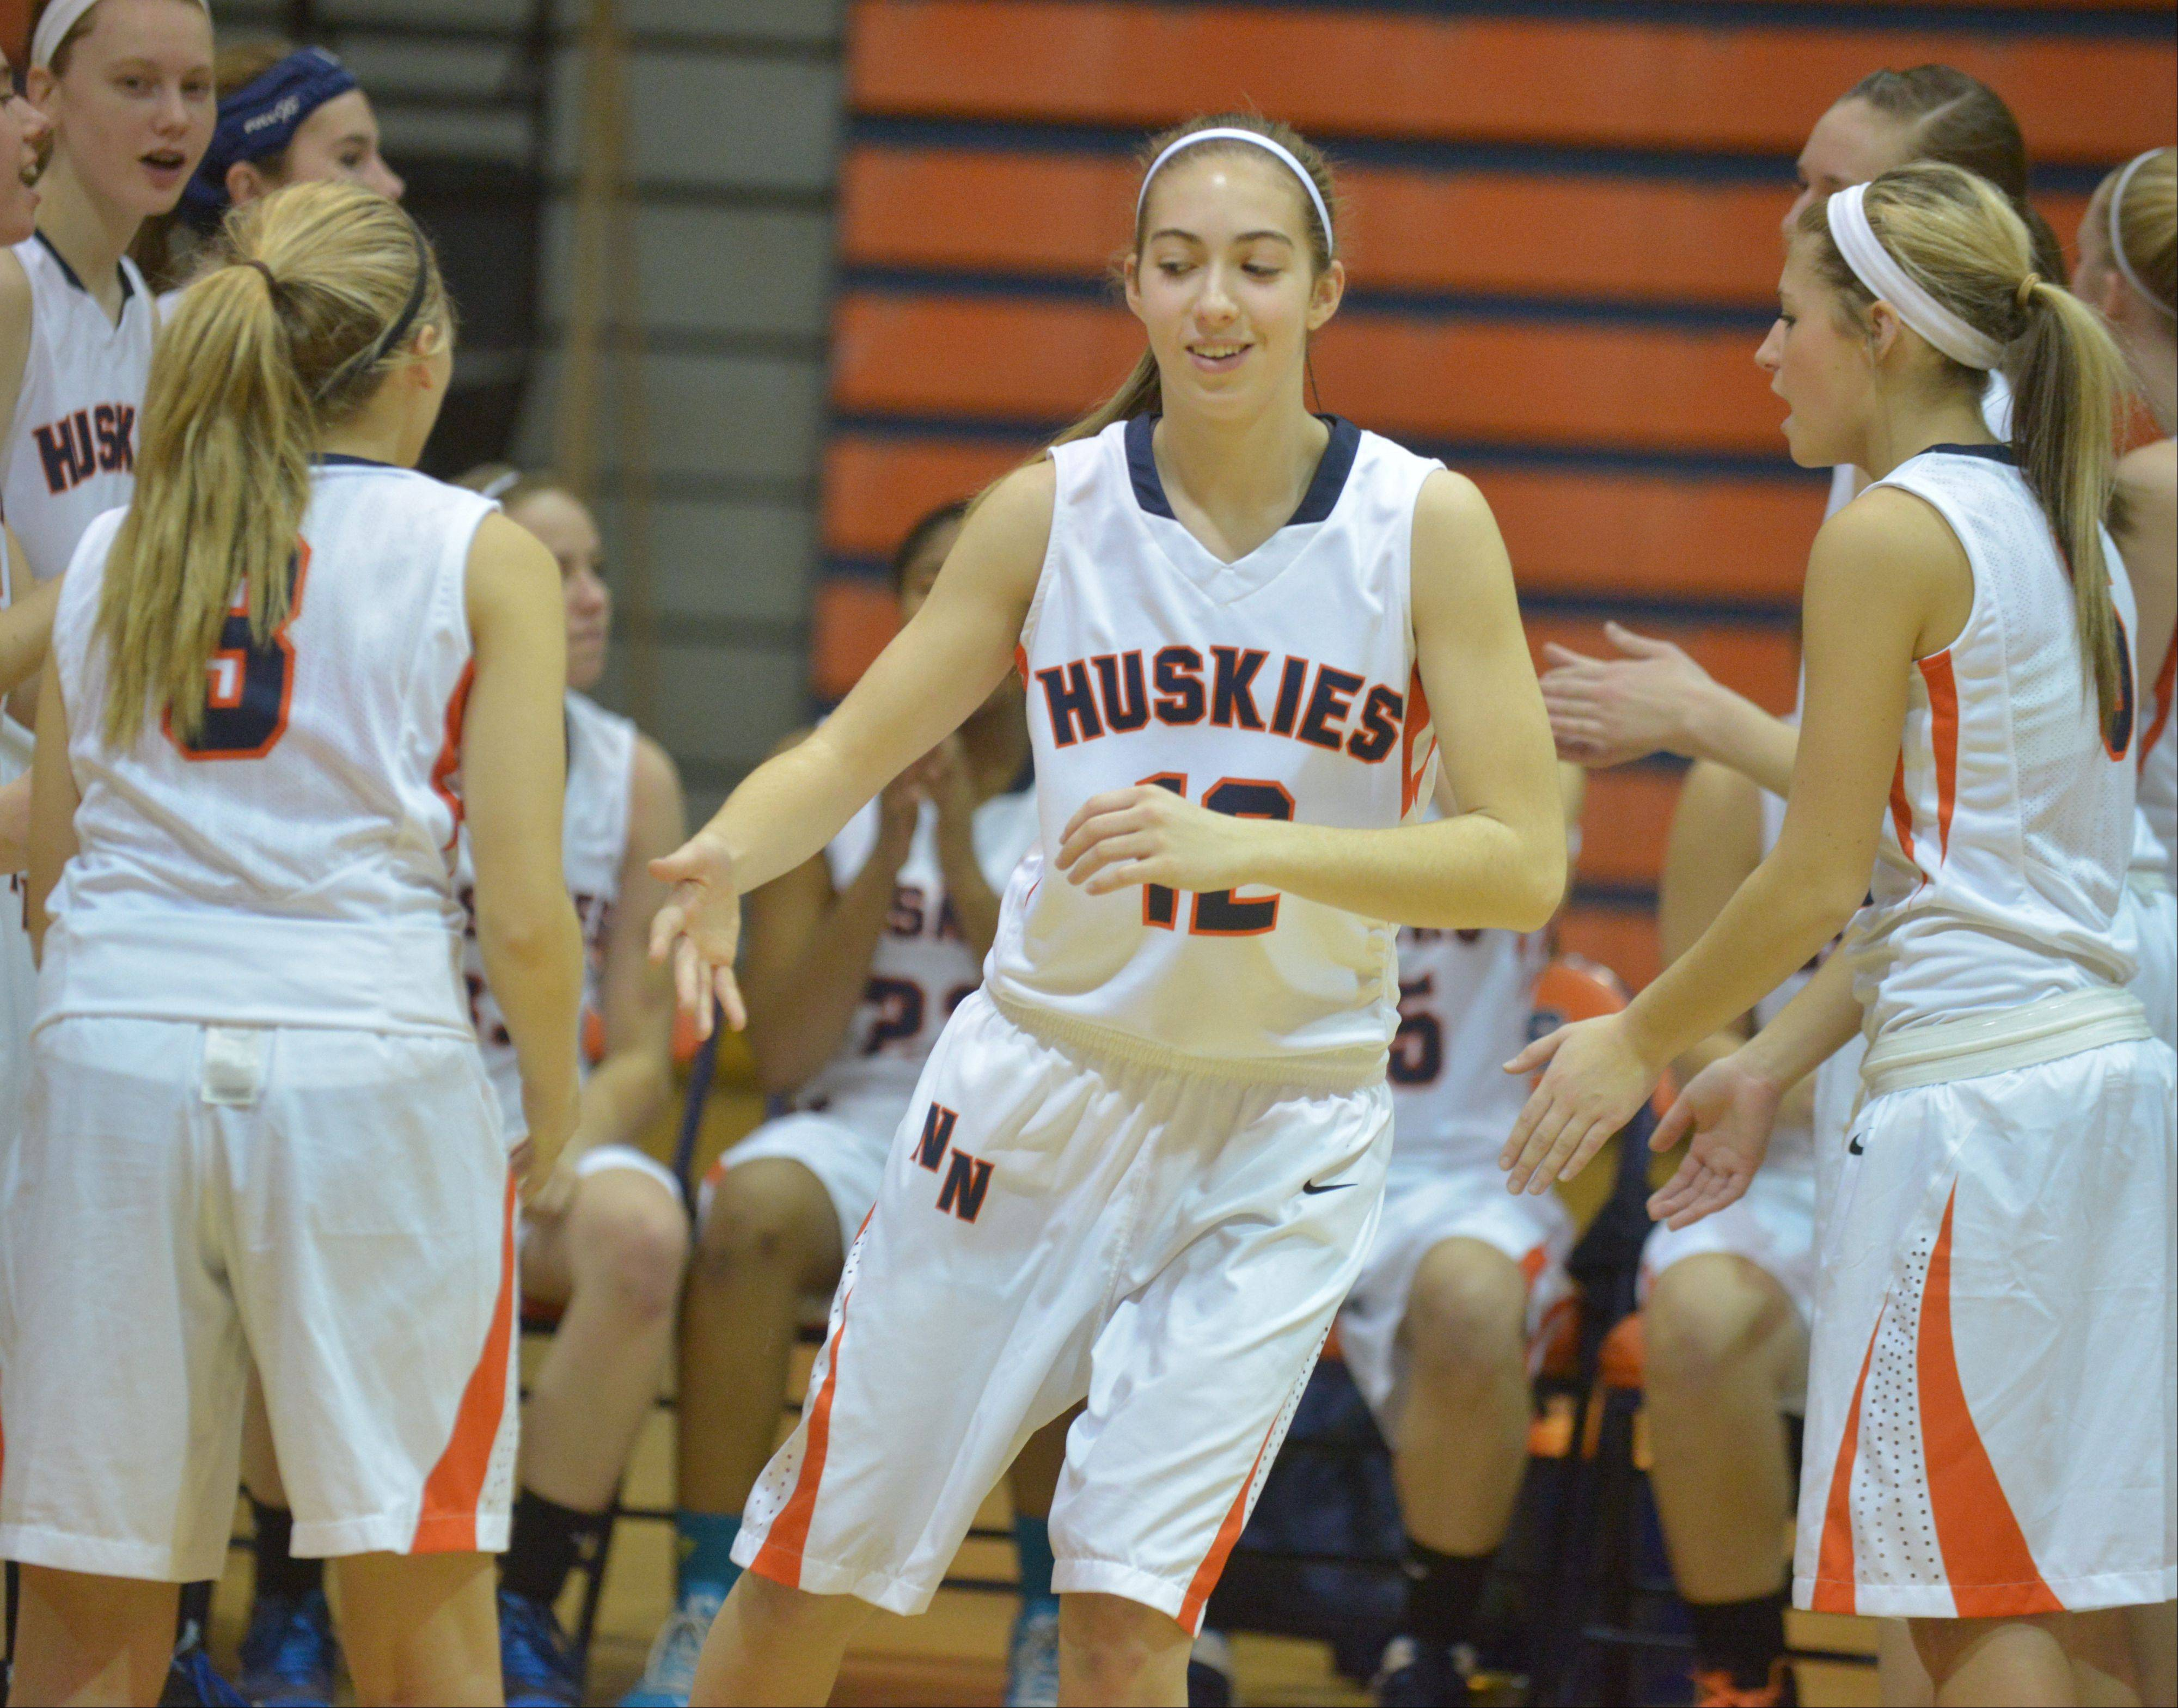 Photos from the Wheaton Warrenville South at Naperville North girls basketball game Tuesday, Dec. 10.